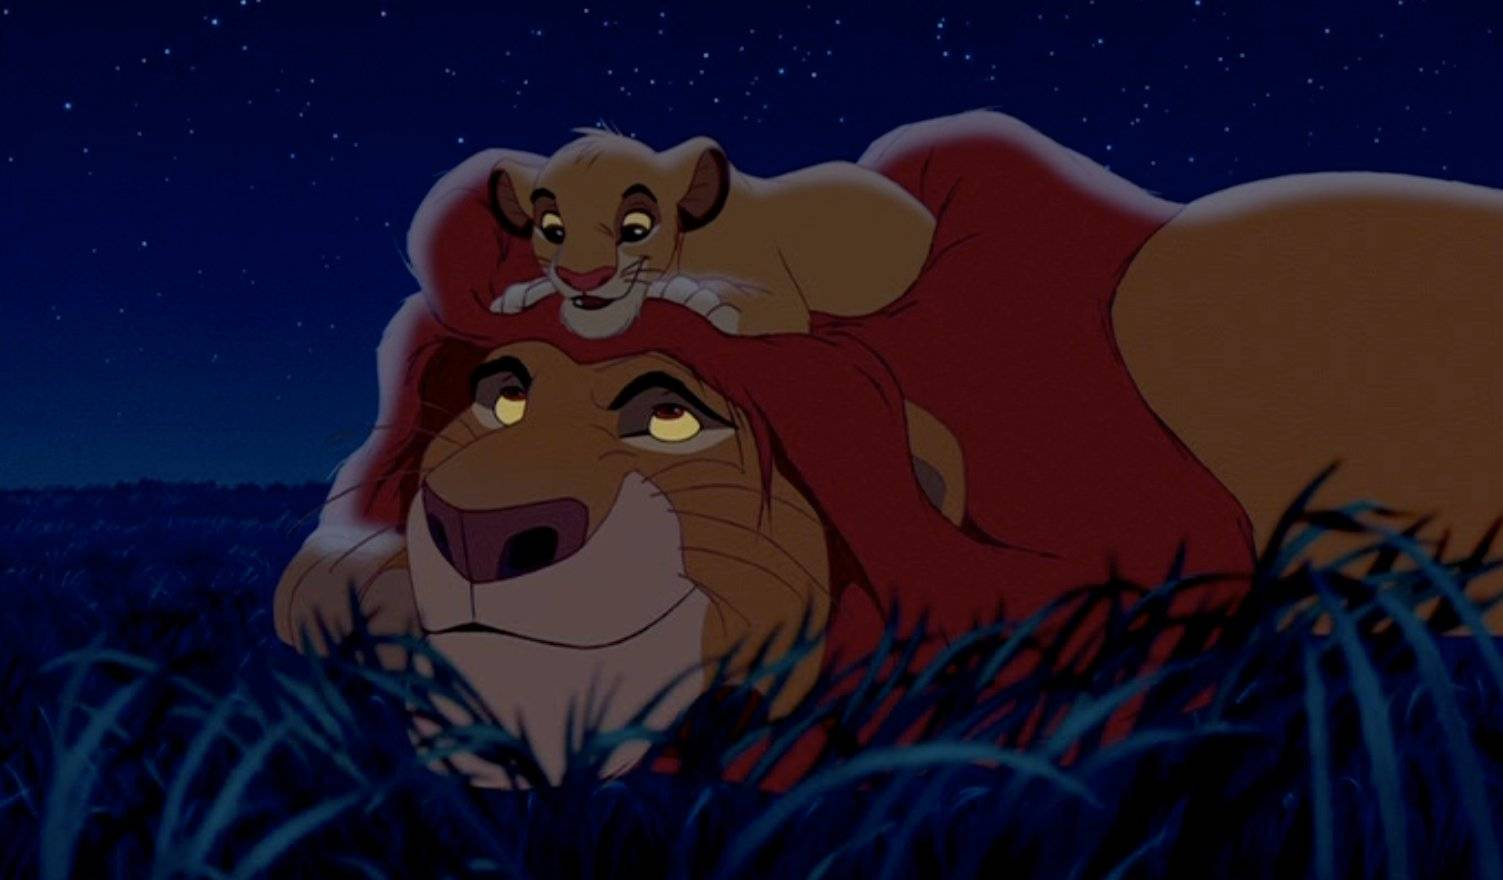 The lion king wallpapers high quality download free - Lion king wallpaper ...